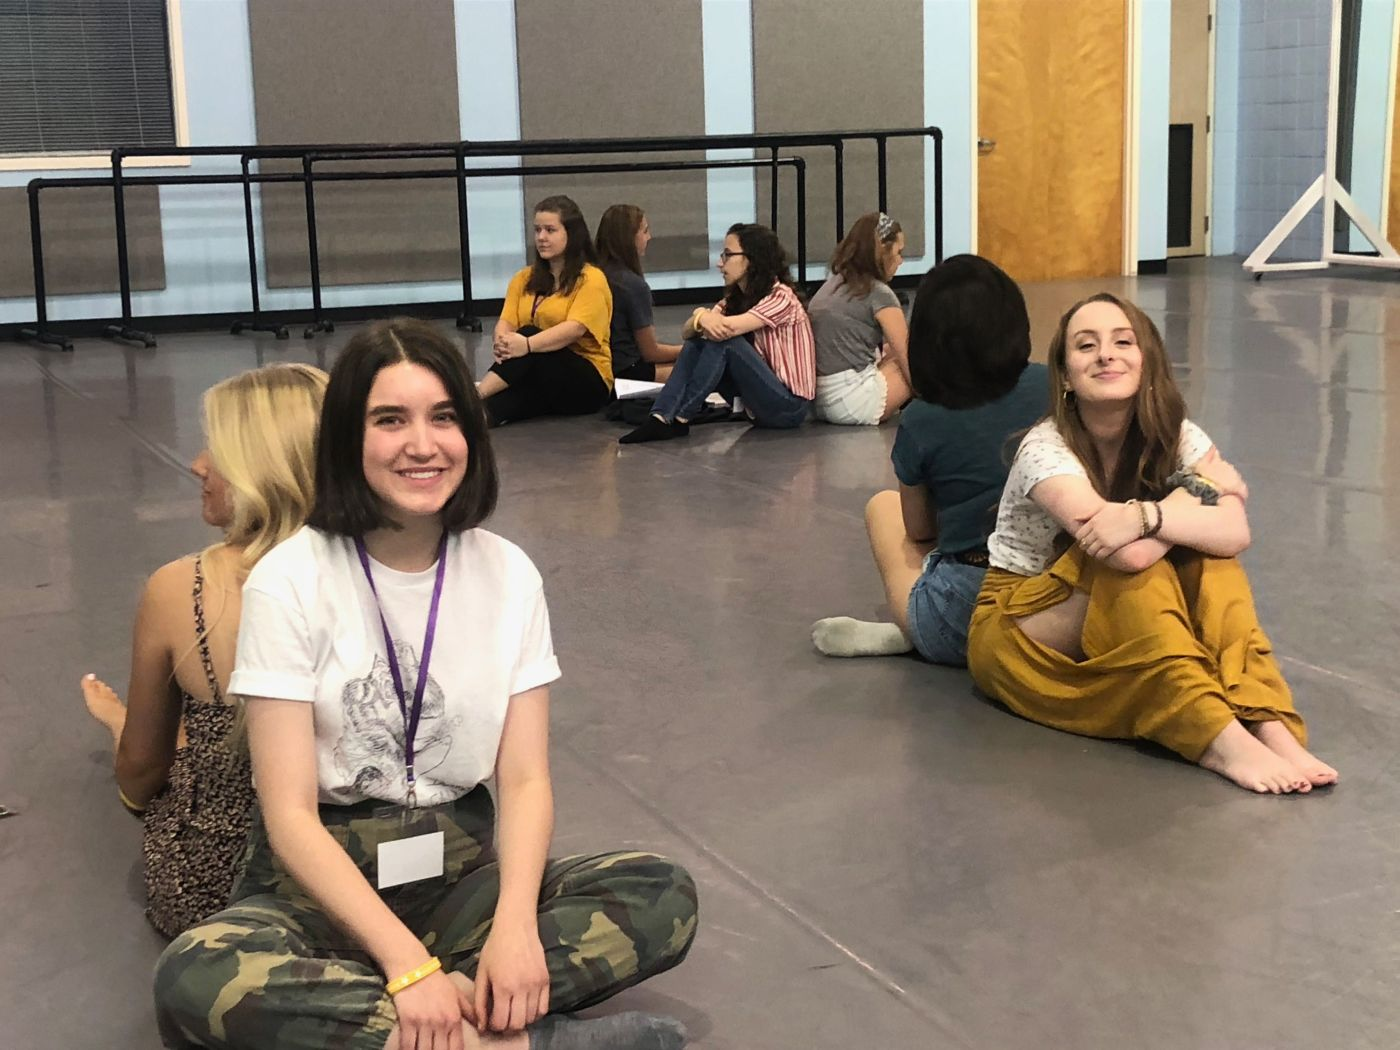 Two  instructors sitting on the floor smiling